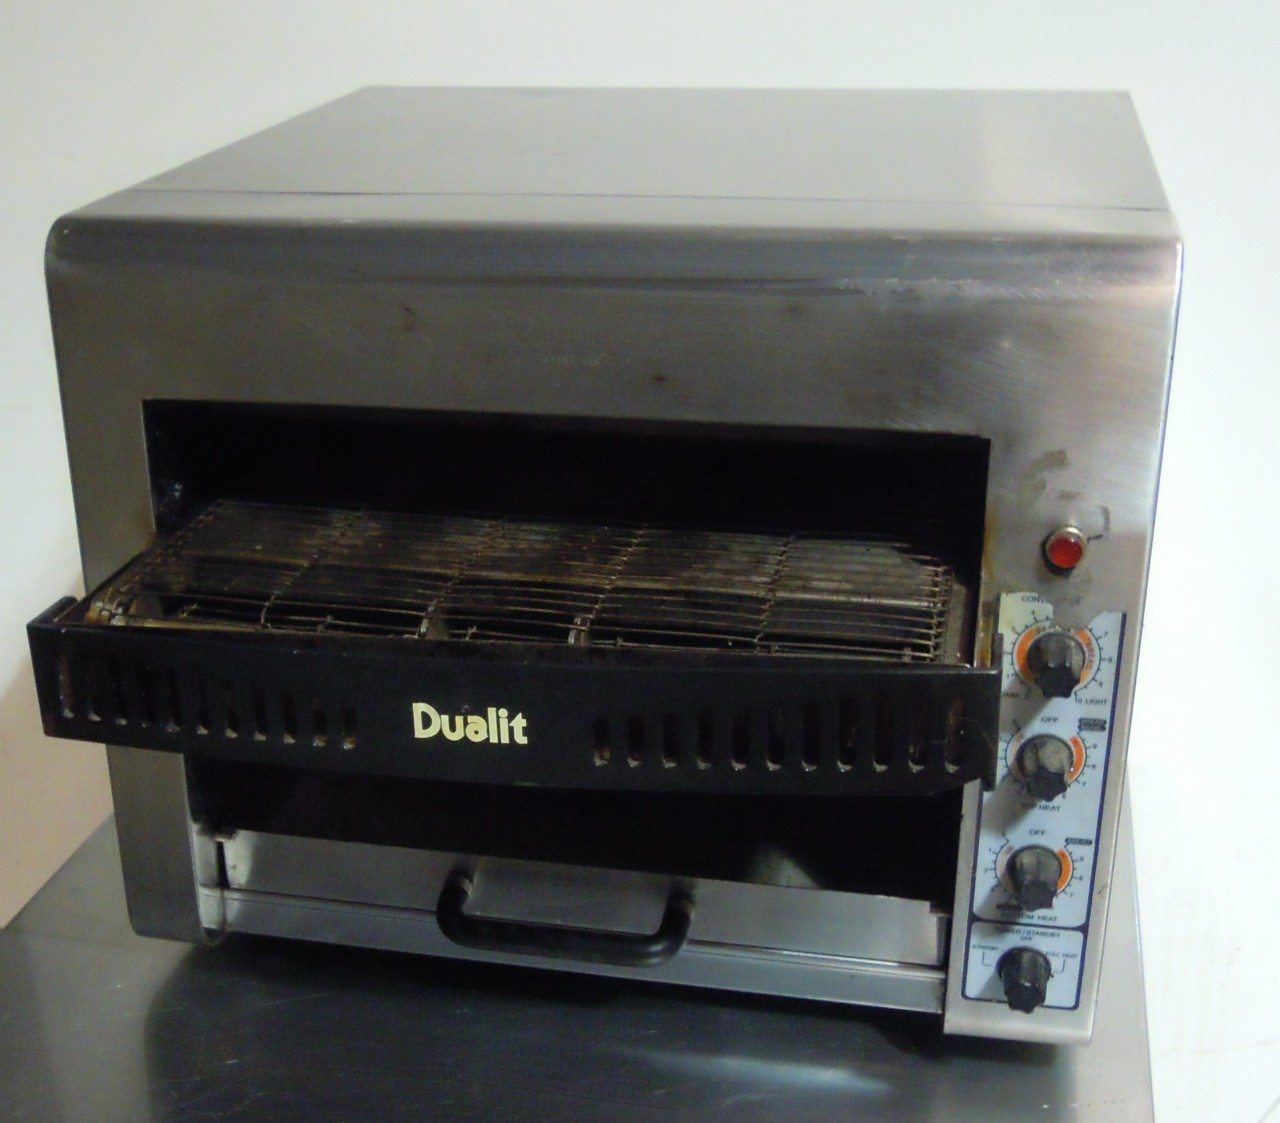 Conveyor Toaster For Home ~ Dualit dct conveyor toaster clearance item no